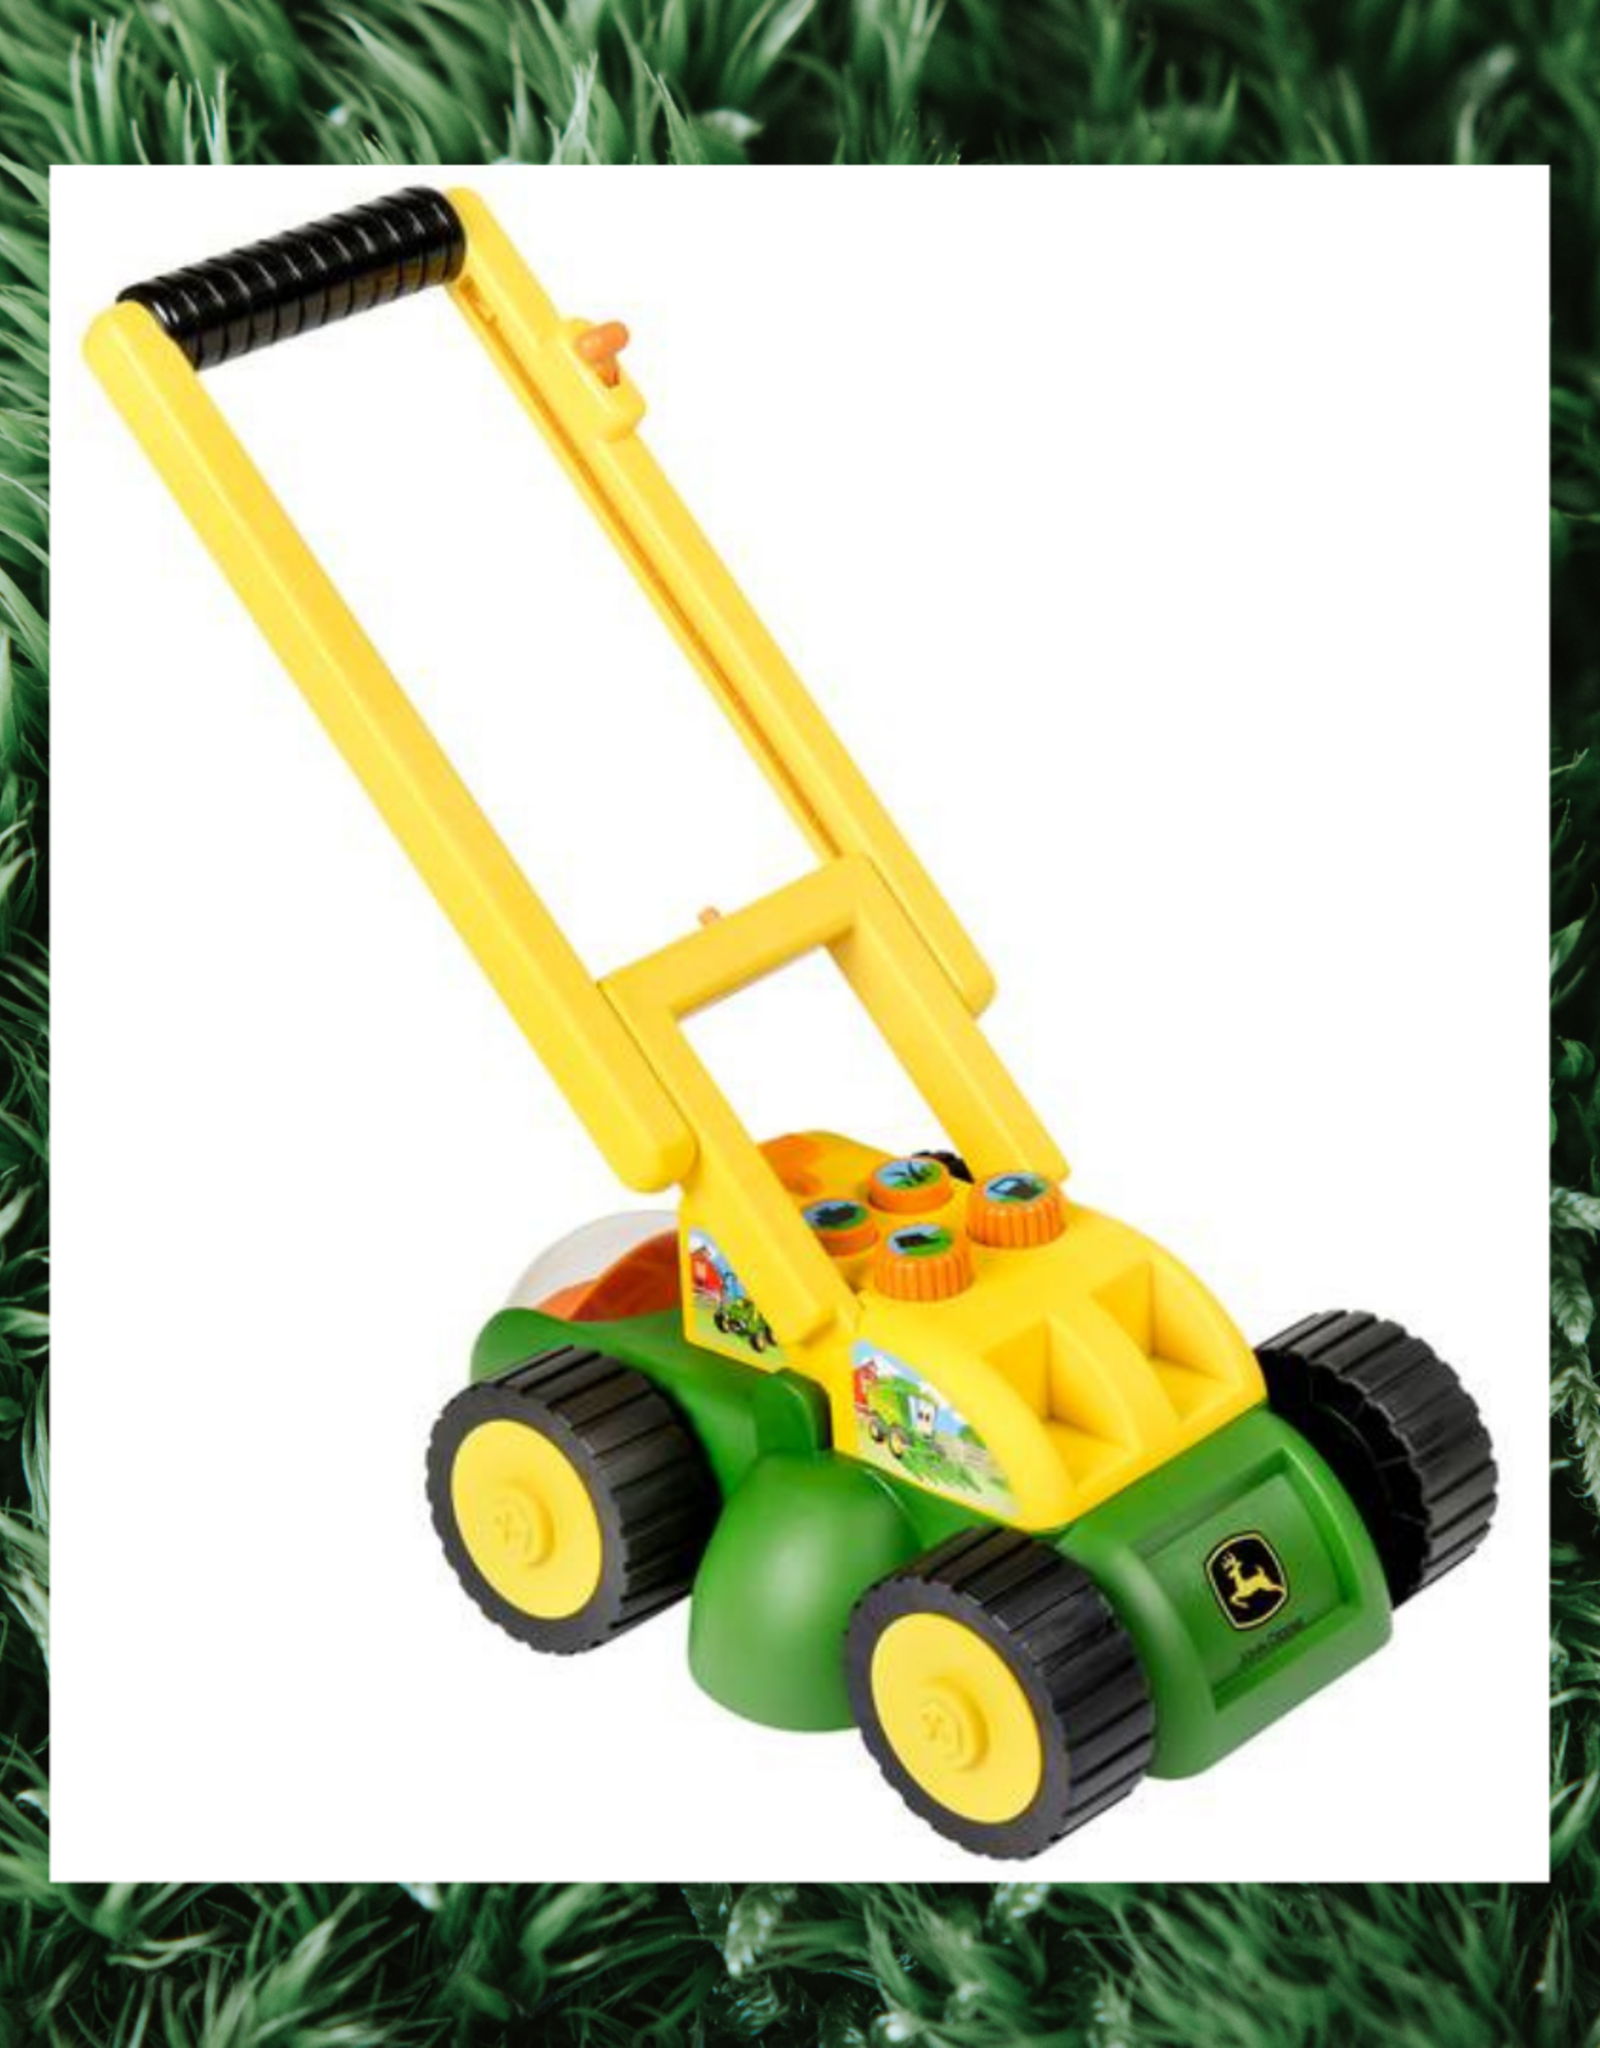 REAL SOUNDS LAWN MOWER